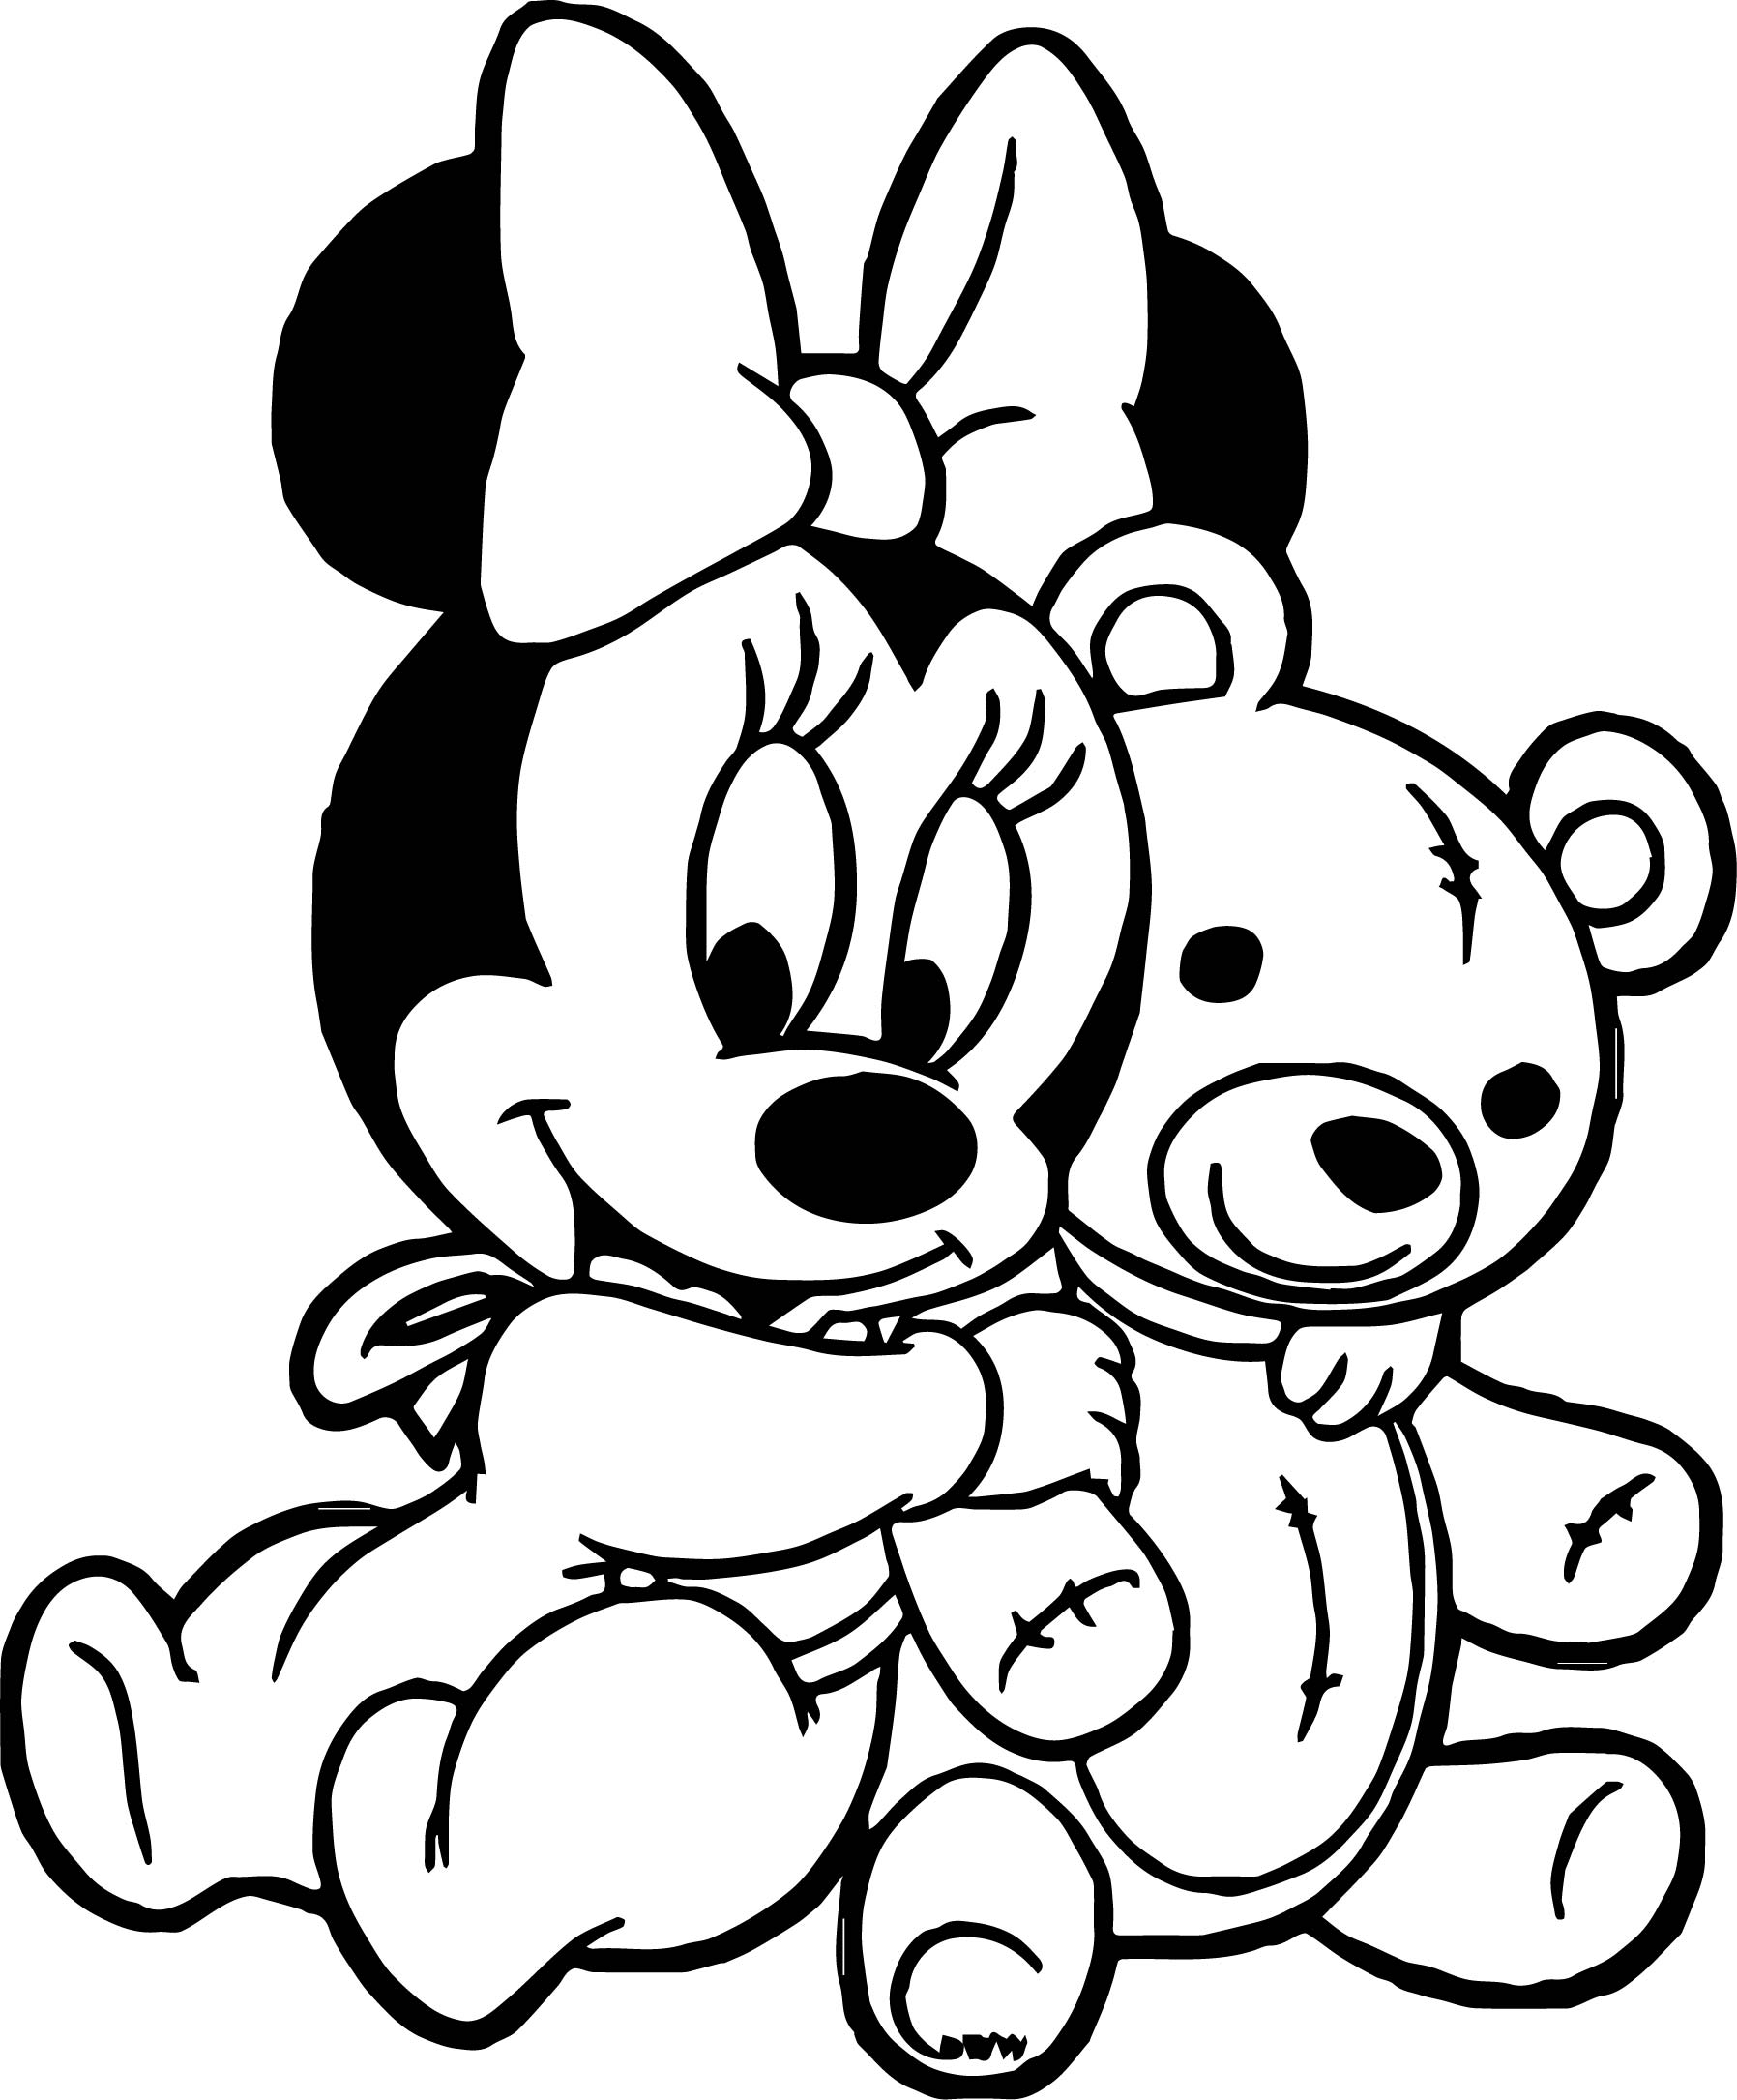 Baby Toys Drawing At Getdrawings Com Free For Personal Use Baby